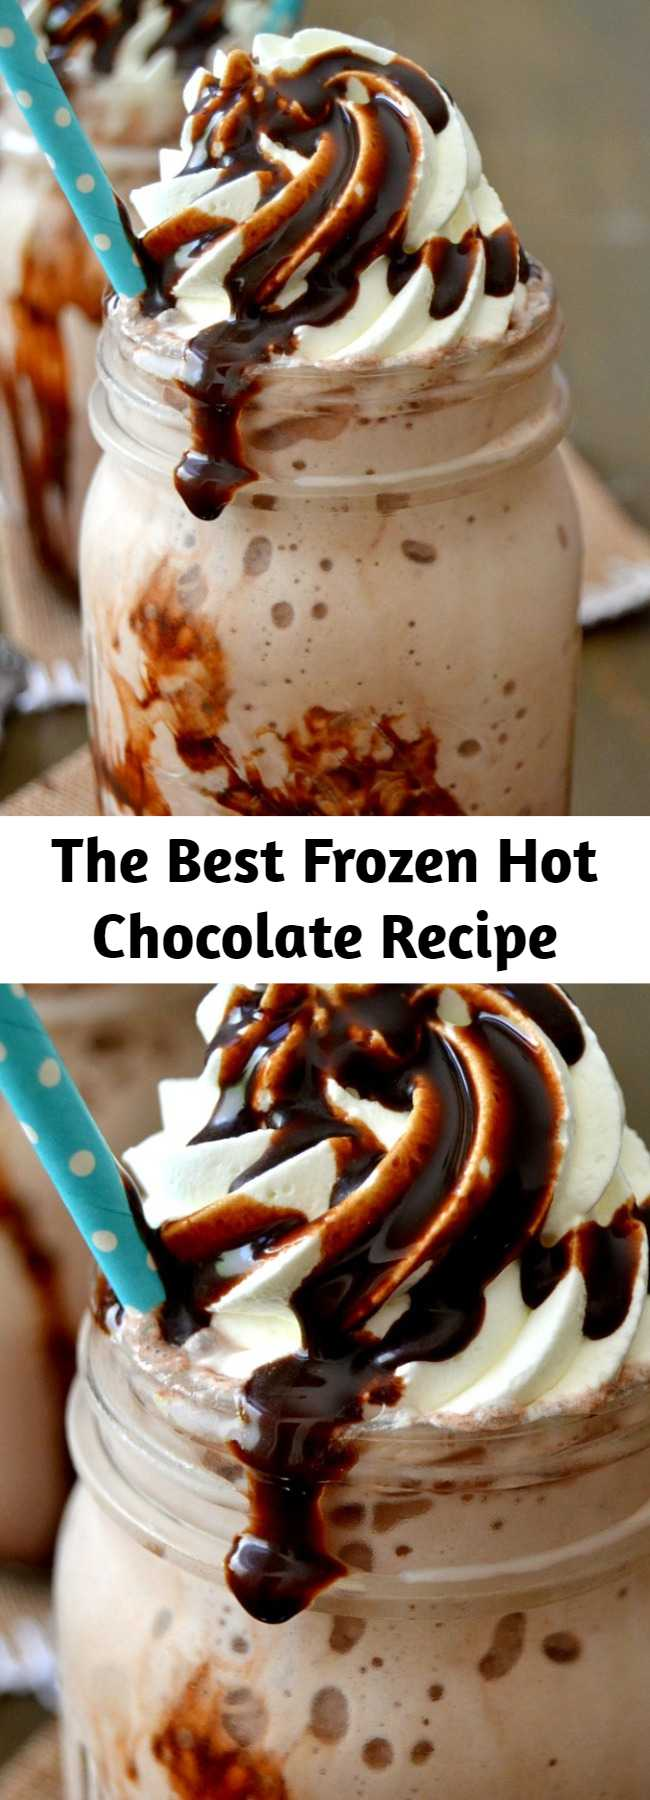 The Best Frozen Hot Chocolate Recipe - These freezy-cool, ultra chocolaty Frozen Hot Chocolates are to-die for! Rich and creamy, you'll love the cocoa flavor and frosty texture. You'll love this easy, foolproof recipe!